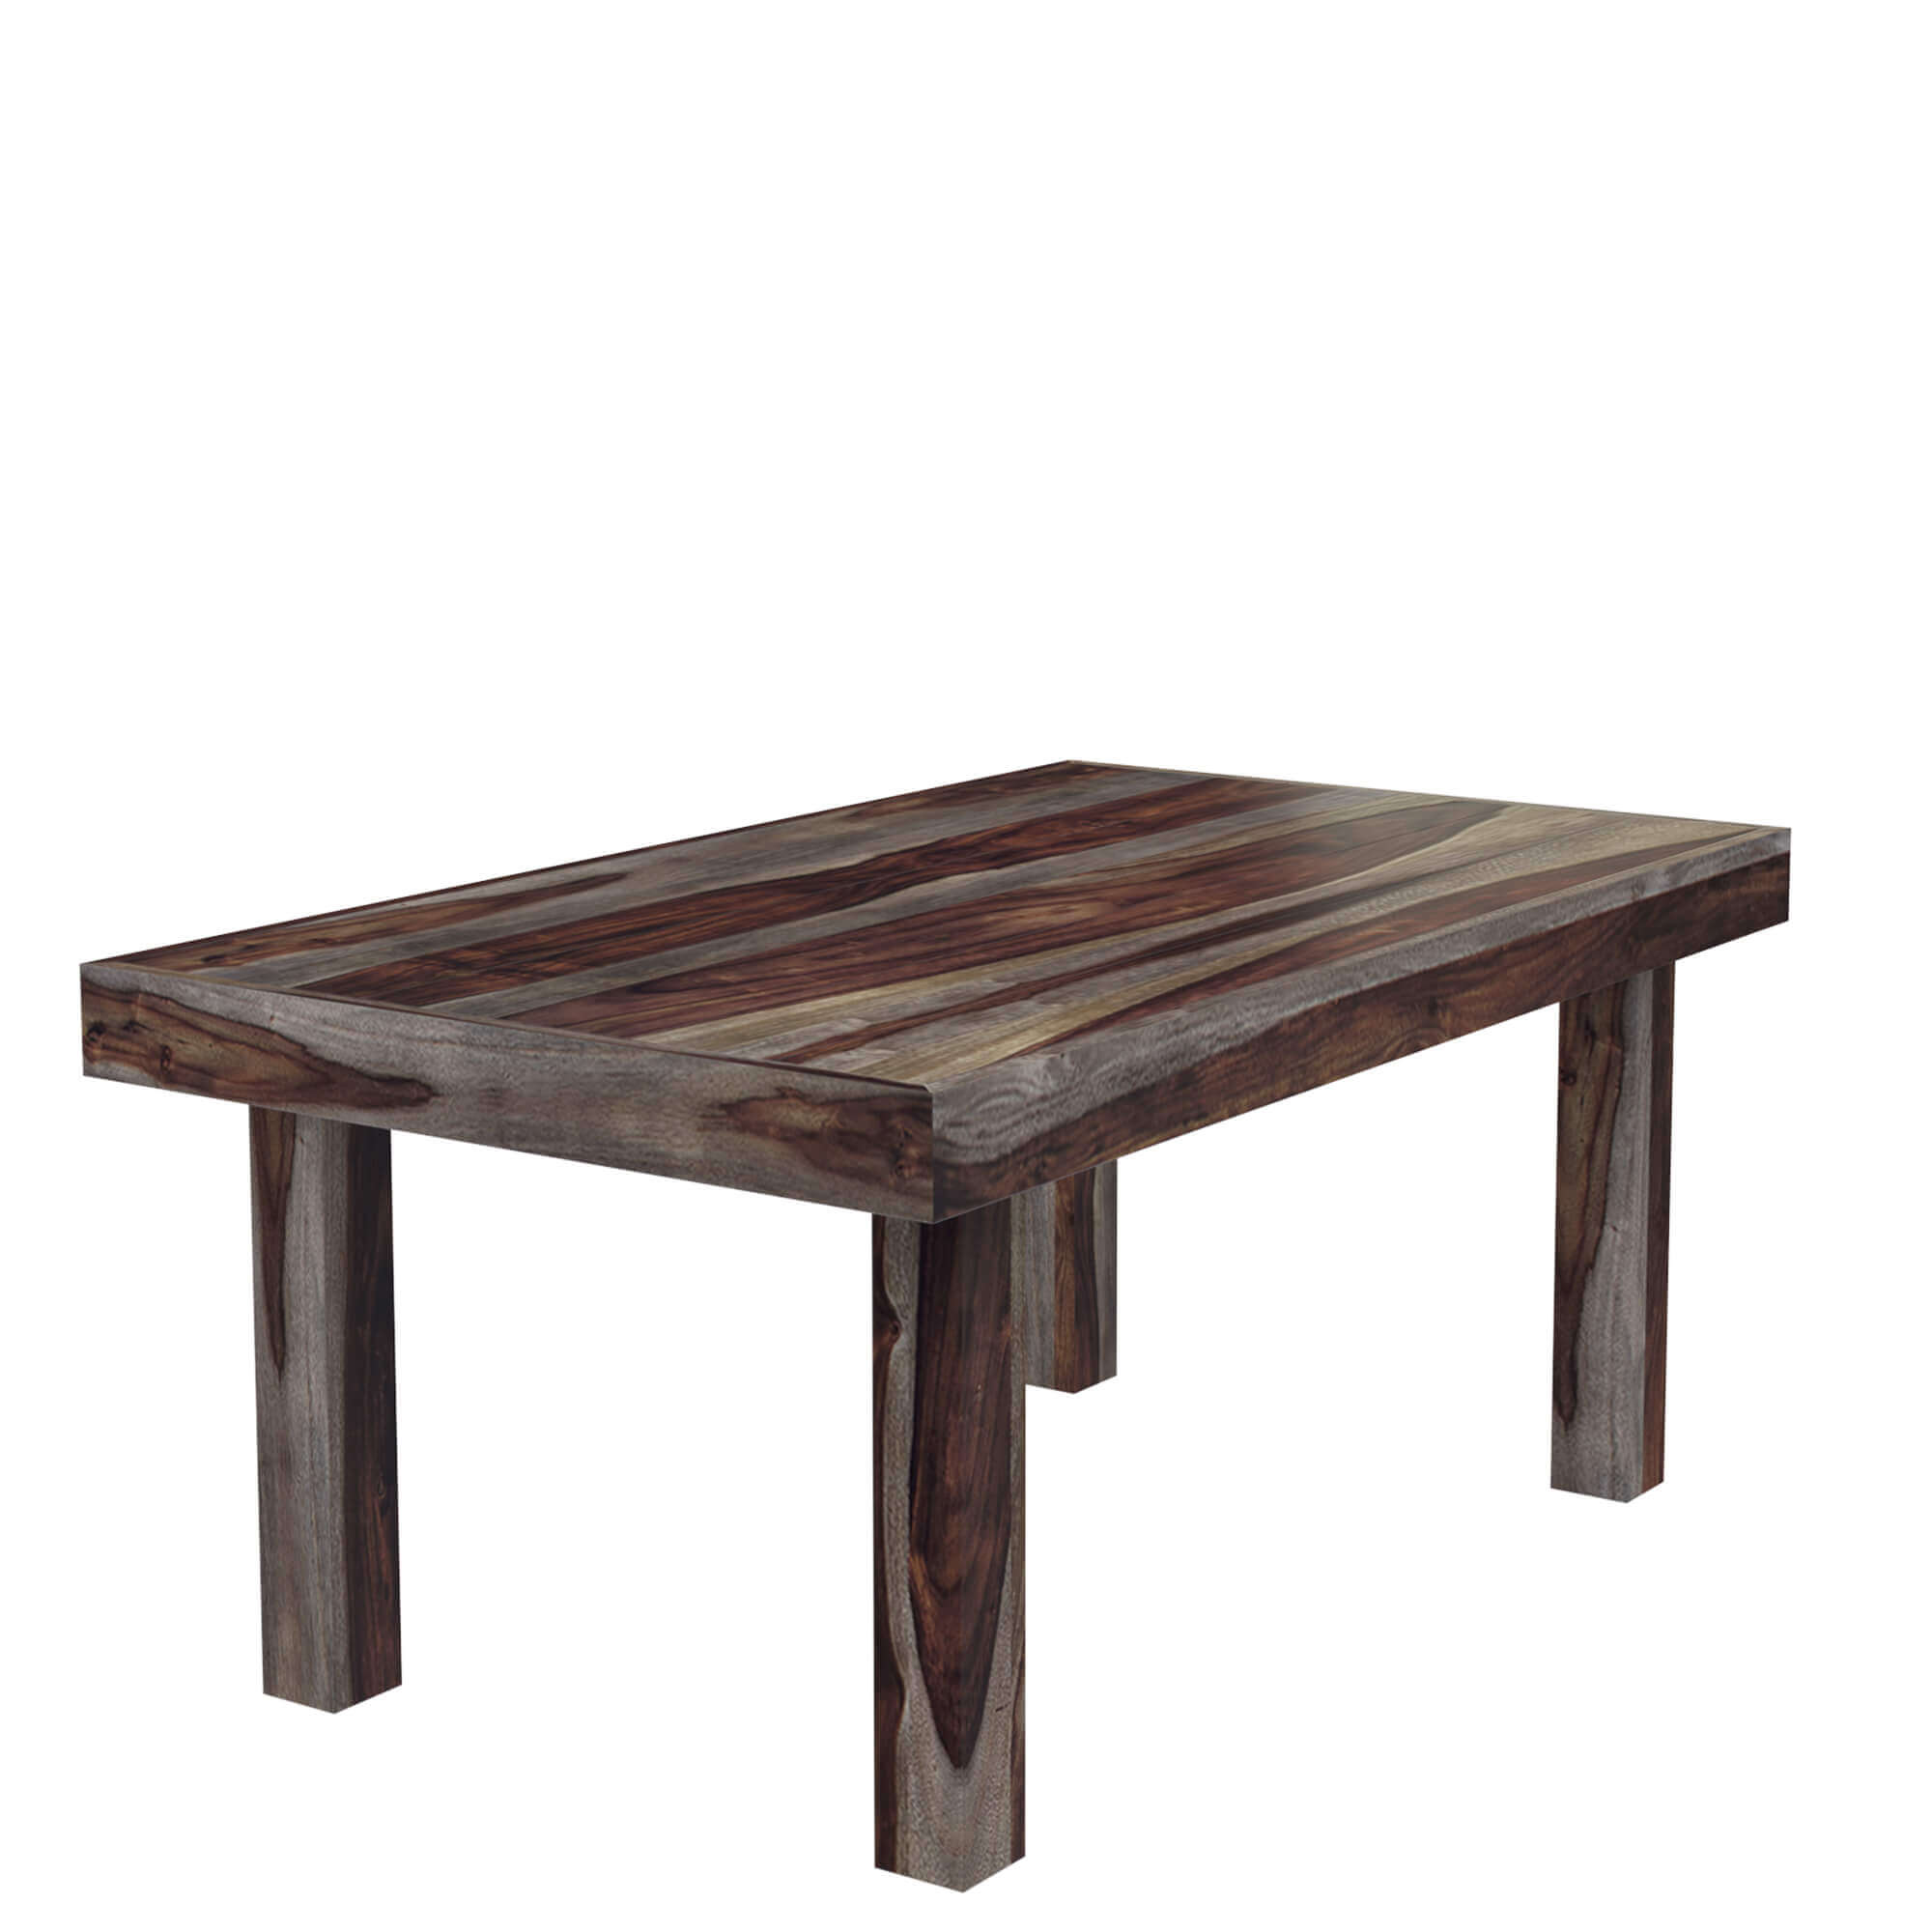 Solid Wood Dining Room Tables ~ Frisco modern solid wood rectangular rustic dining room table